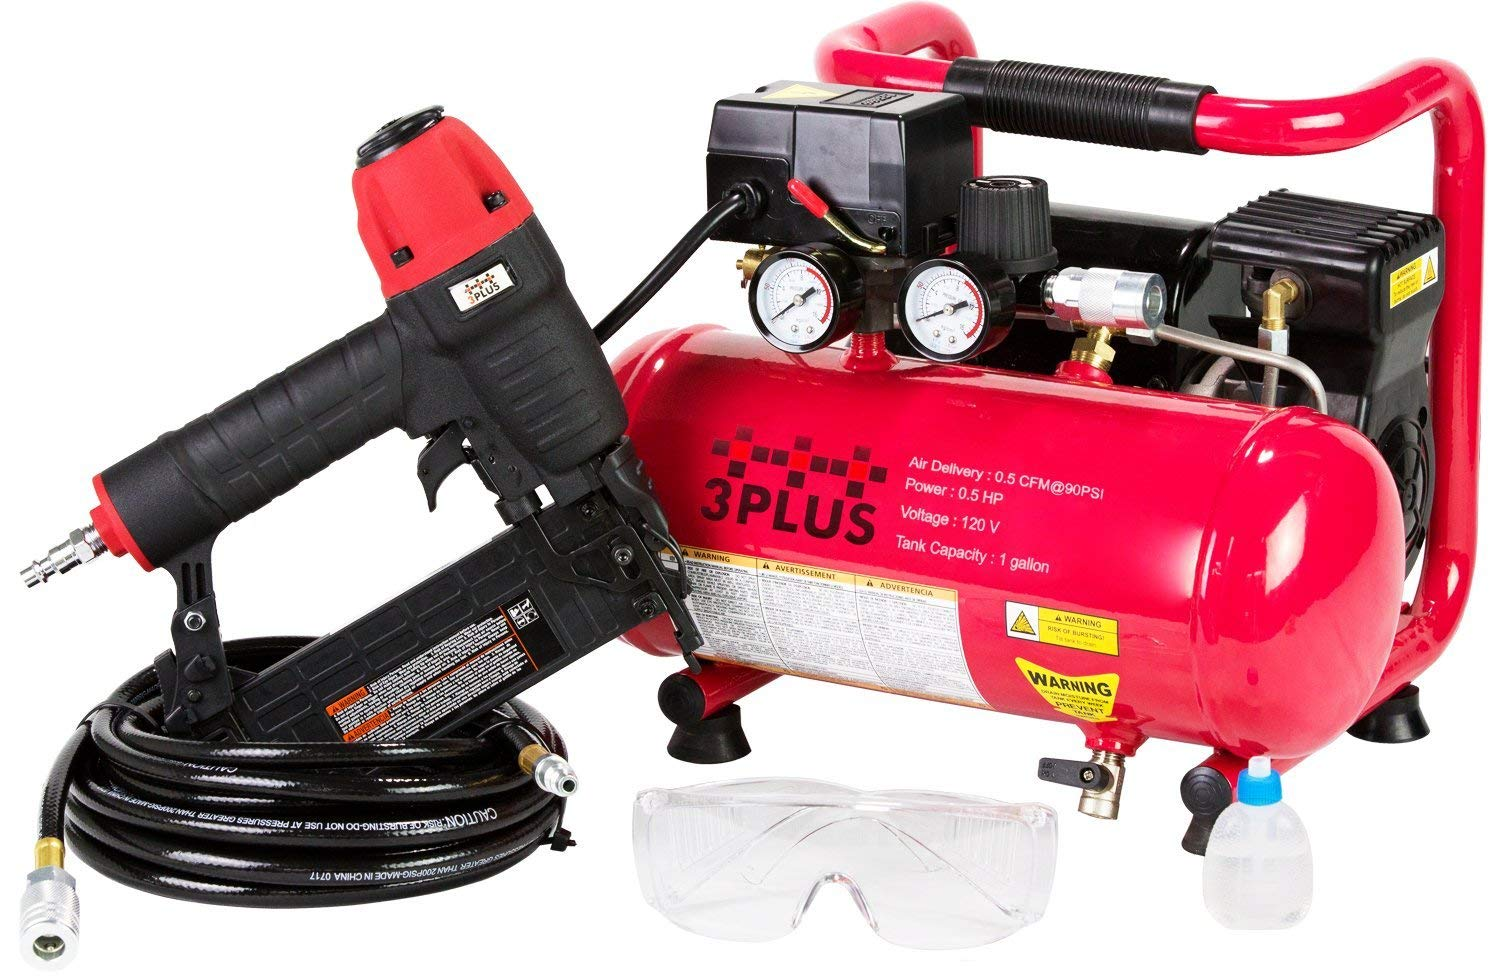 Best Quiet Air Compressors 2019 - Reviews and Buying Guide - Quiet